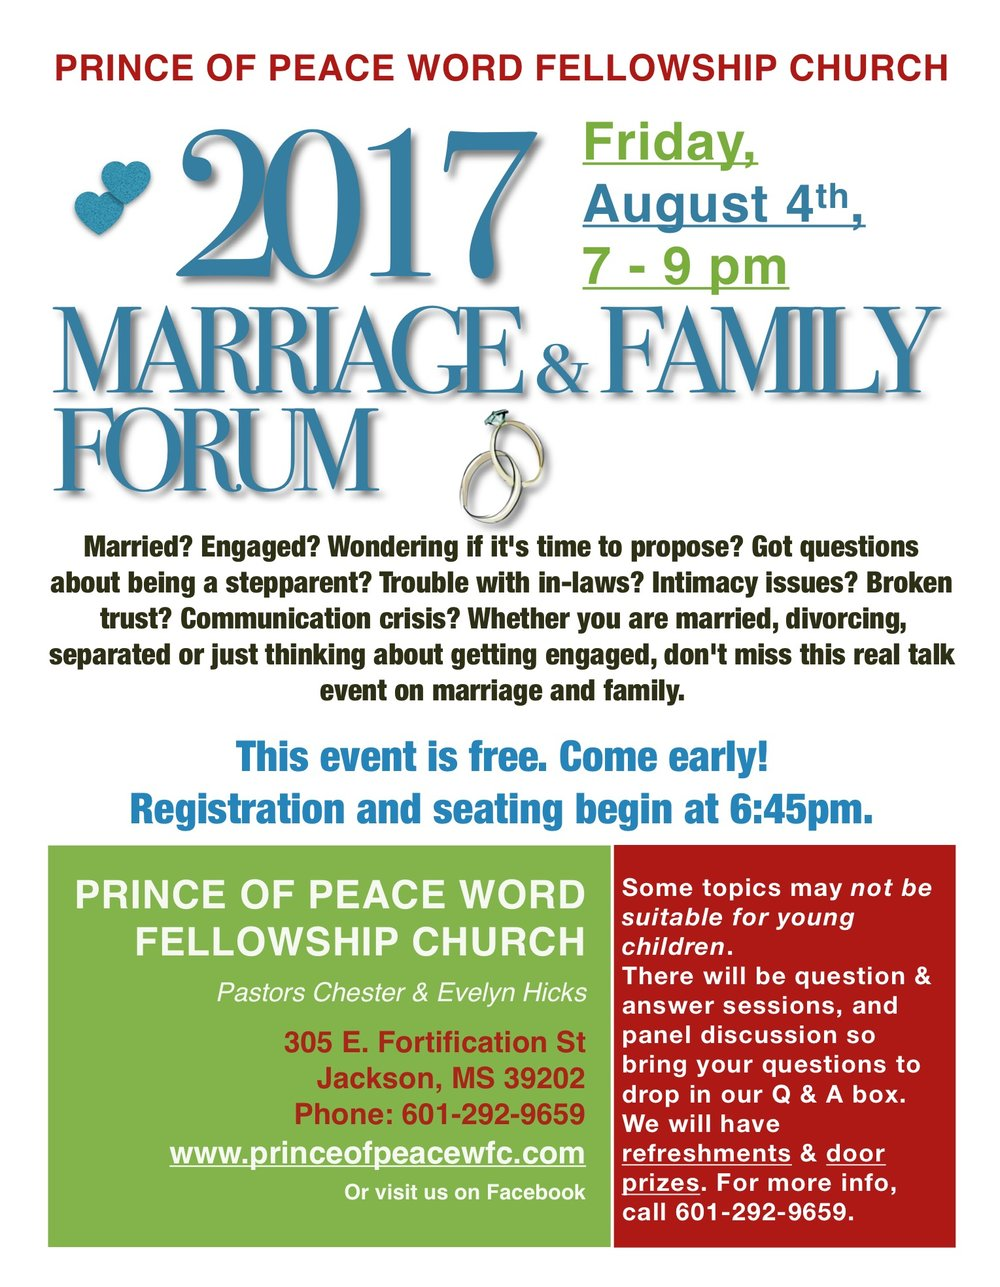 2017 Marriage & Family Forum — Prince of Peace Word